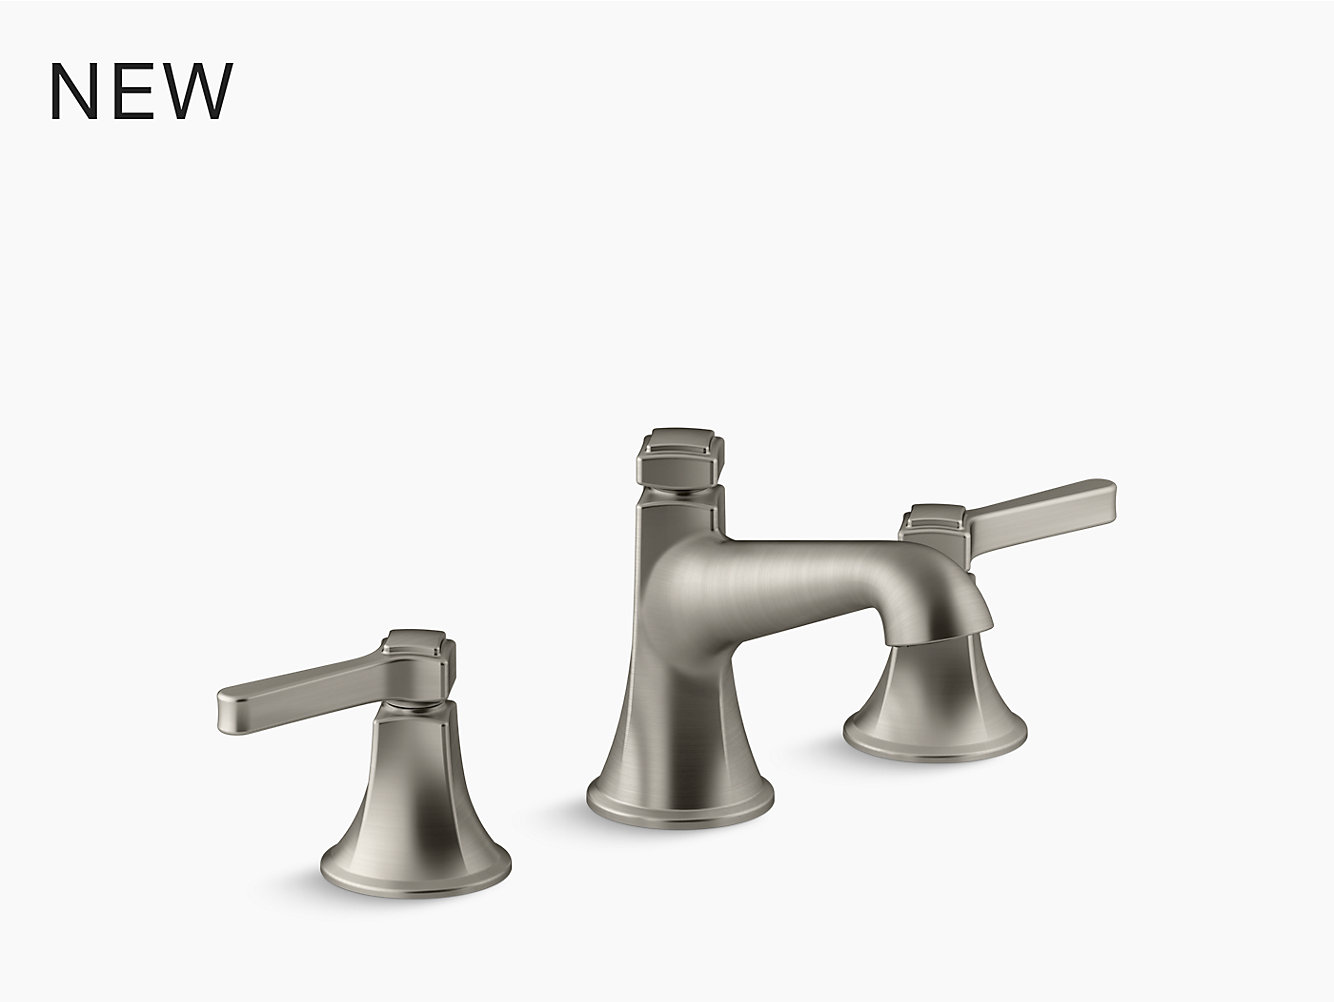 karbon articulating kitchen sink faucet with sprayhead k 6227 view larger